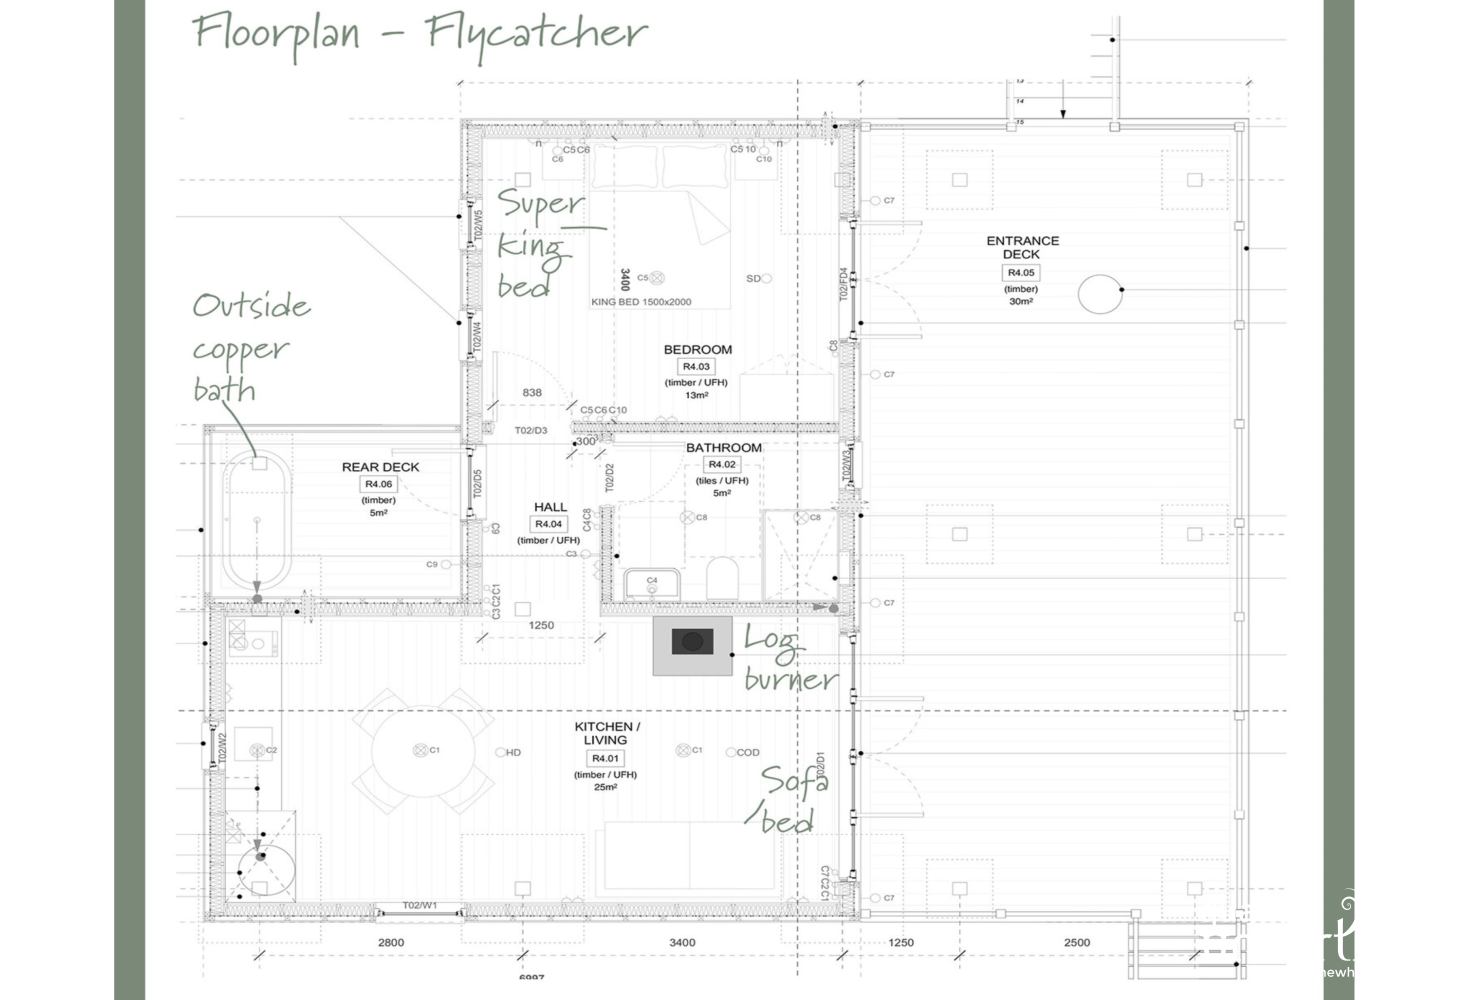 Floorplan Fly Catcher